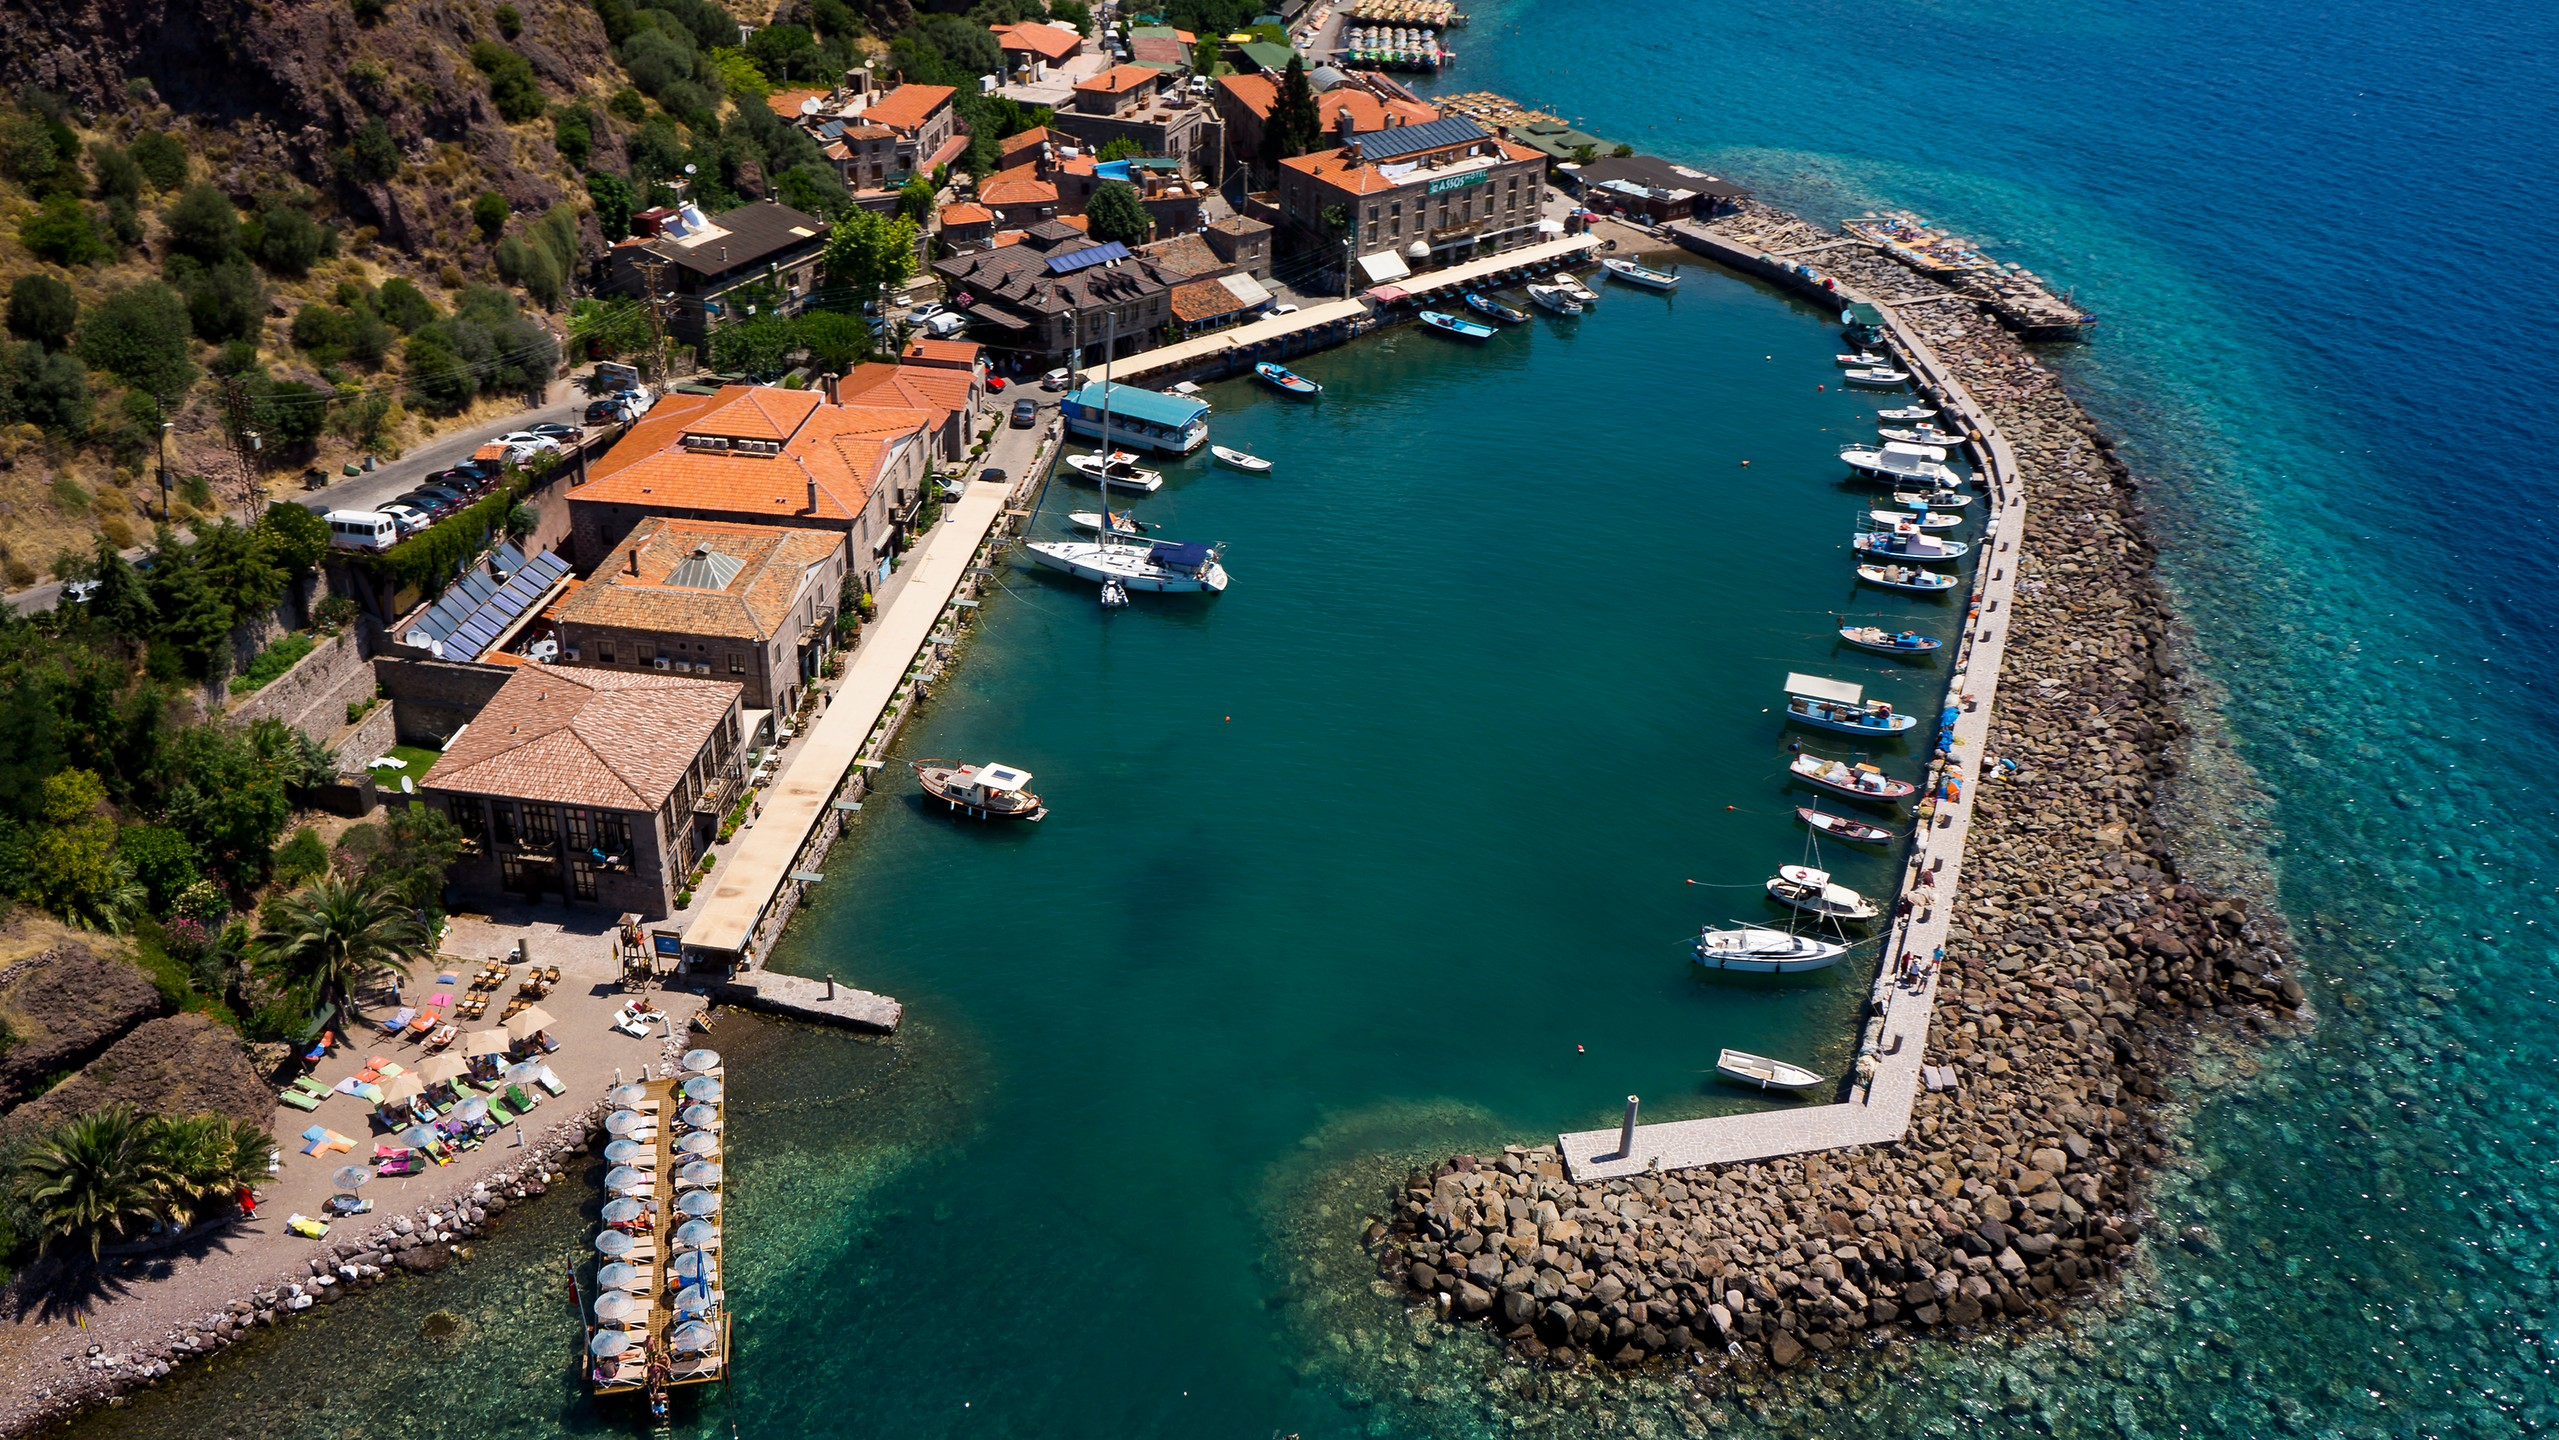 Assos harbor from above